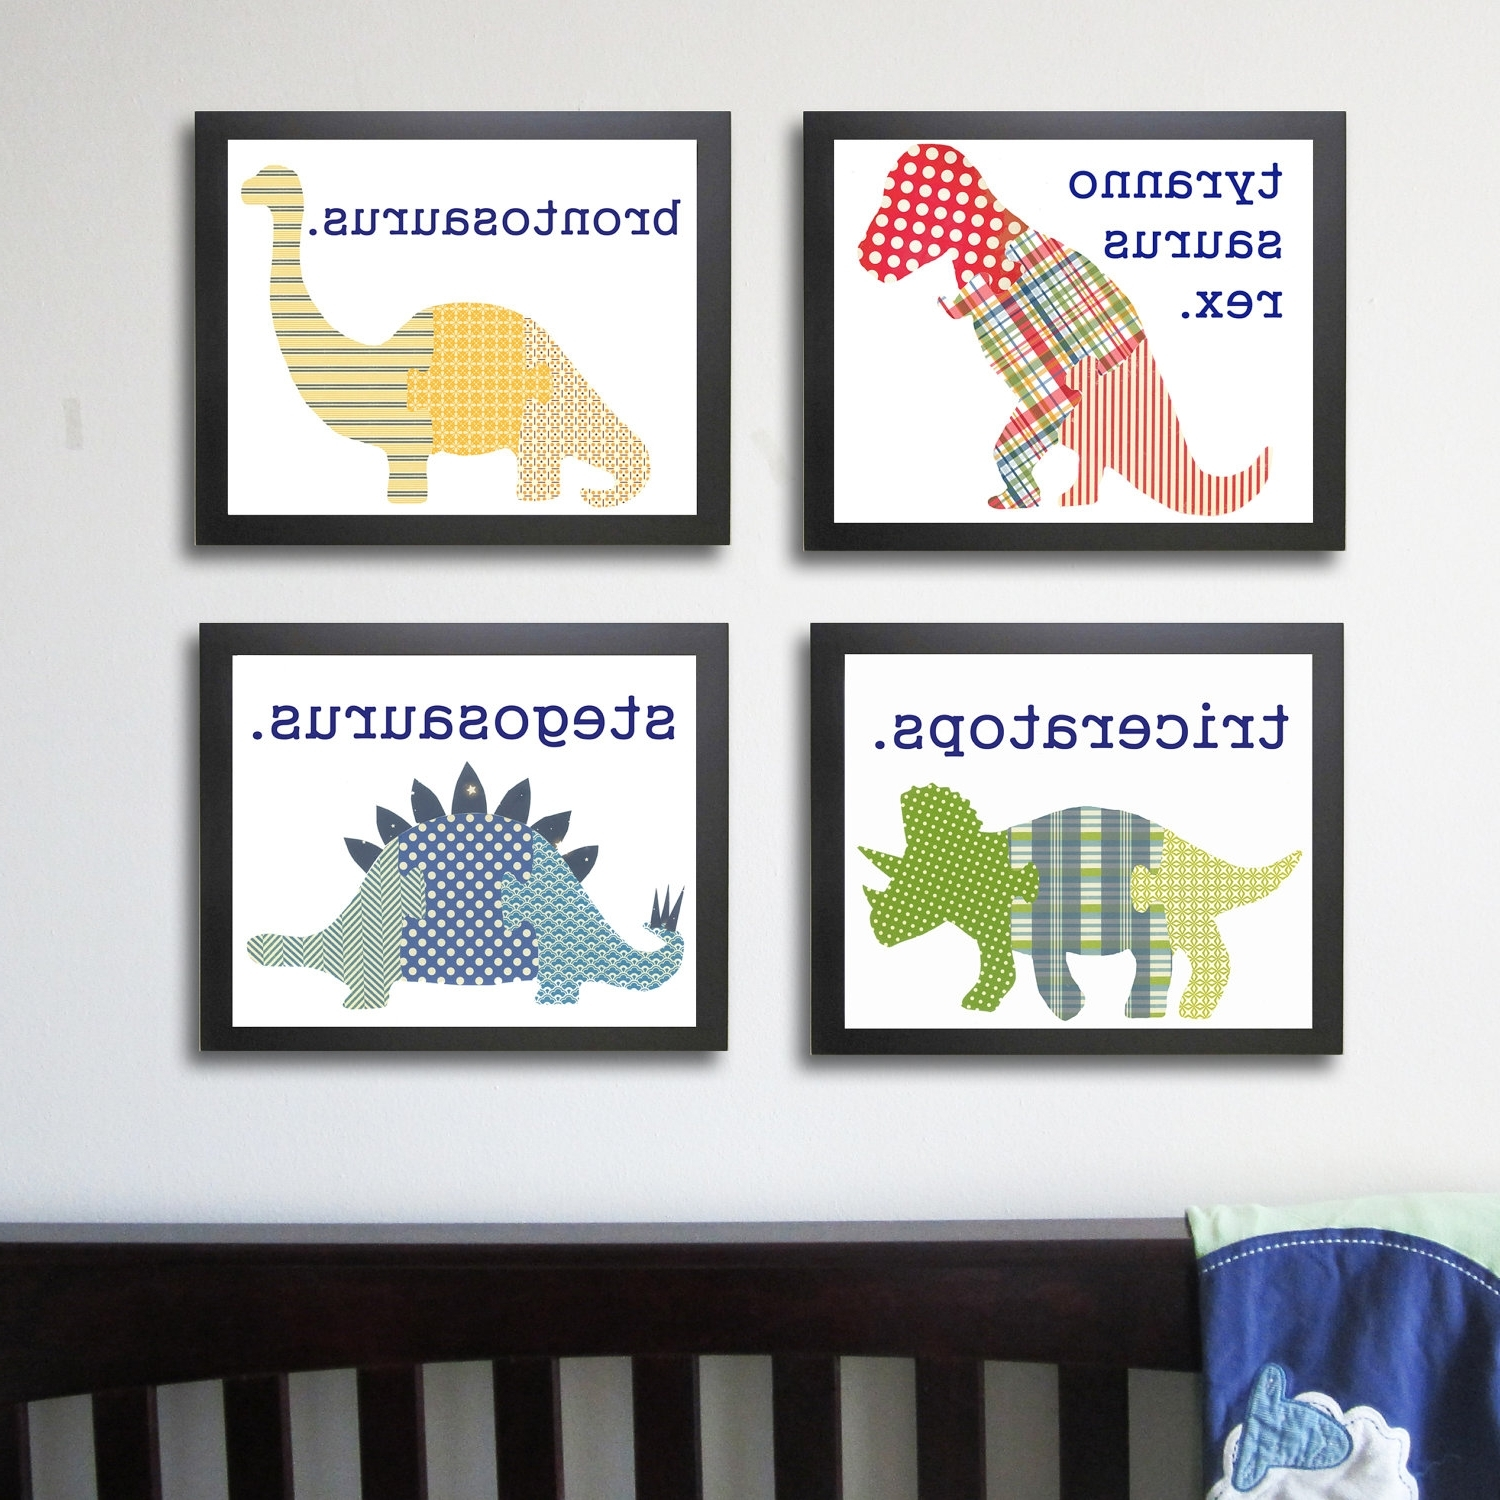 Fashionable Dinosaur Wall Art For Kids With Regard To Wall Art Designs: Dinosaur Wall Art Ethan Bedroom Dinosaur Art (View 11 of 15)